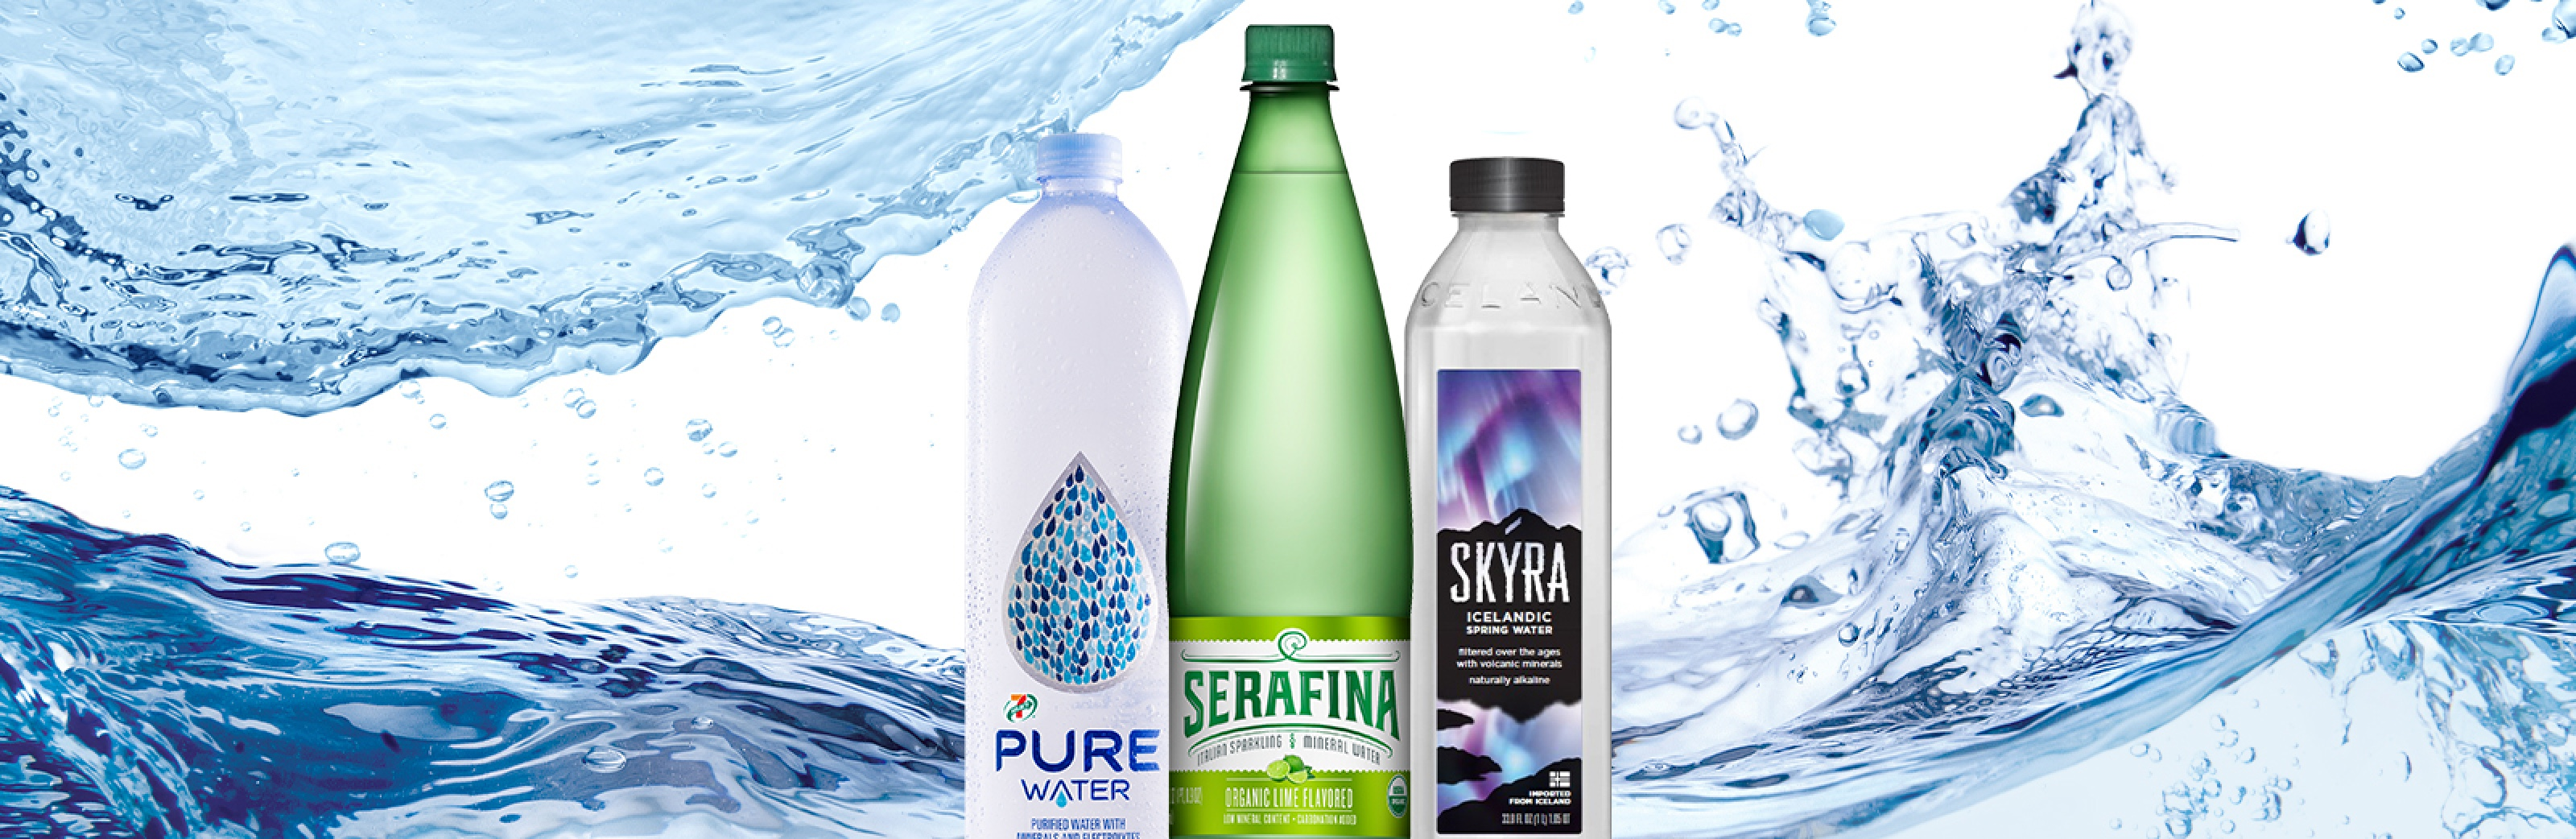 Bottled water available at your local 7-Eleven 24/7. Pictured: A bottle of PURE, Serafina and Skyra water on a background featuring a large blue splash.